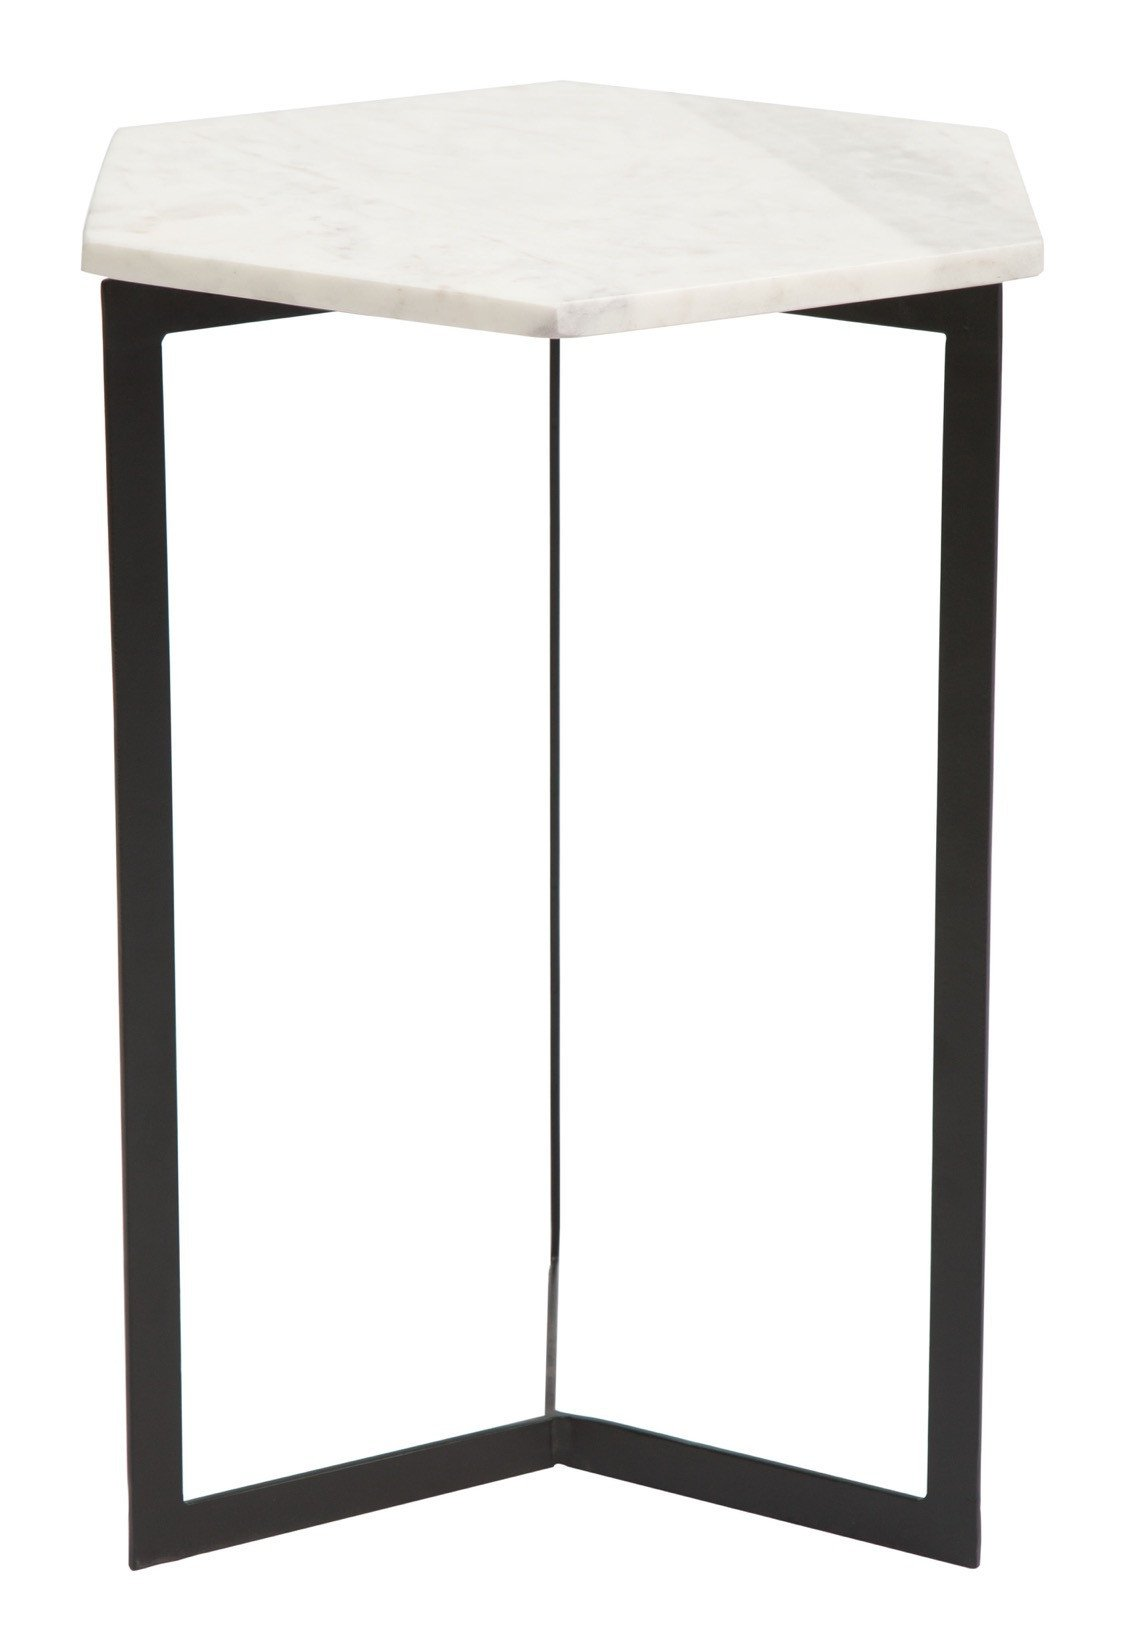 rys accent table with hexagon white faux marble top black iron base side tables alan decor bbq grill mid century modern round coffee casual dining sets teak patio furniture thin